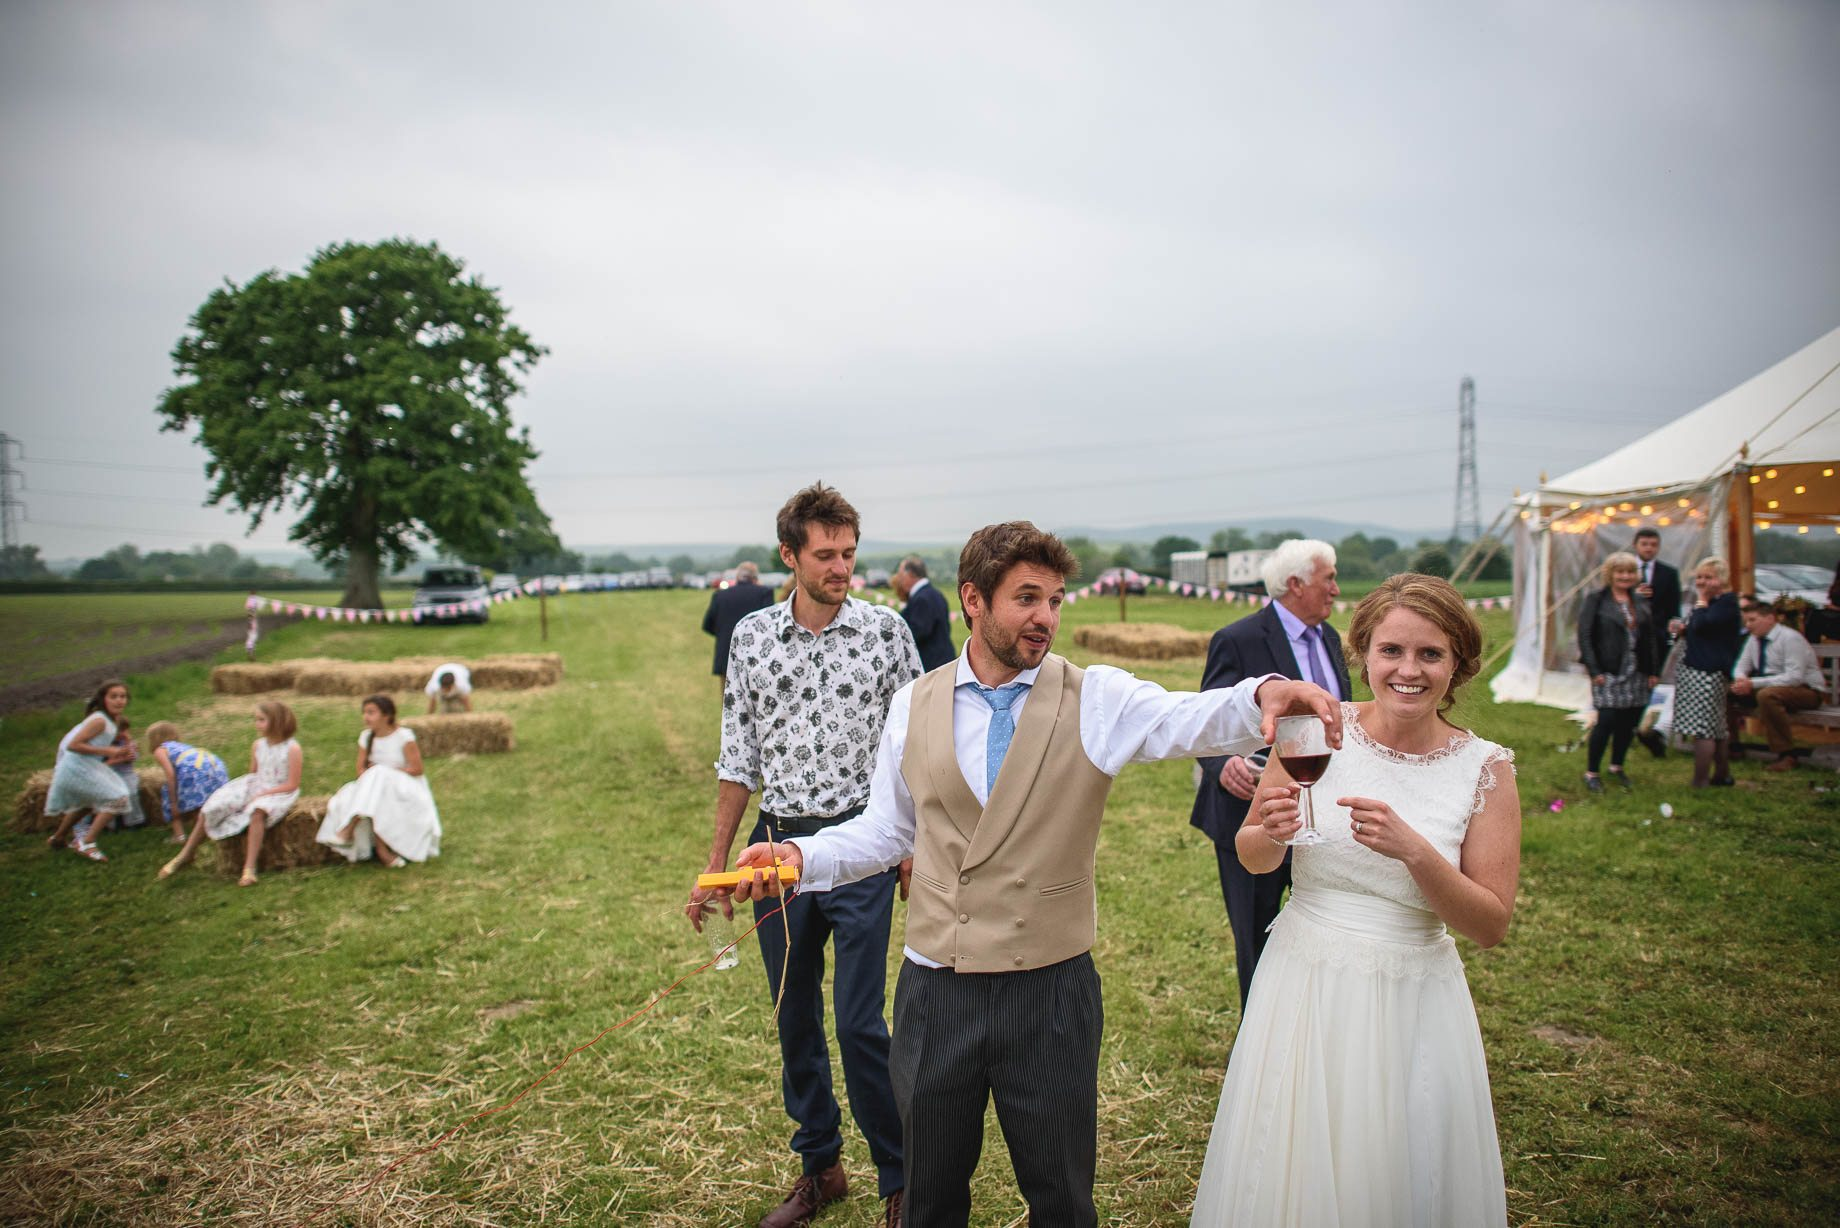 Wiltshire wedding photography by Guy Collier - Lucie and Matt (184 of 198)